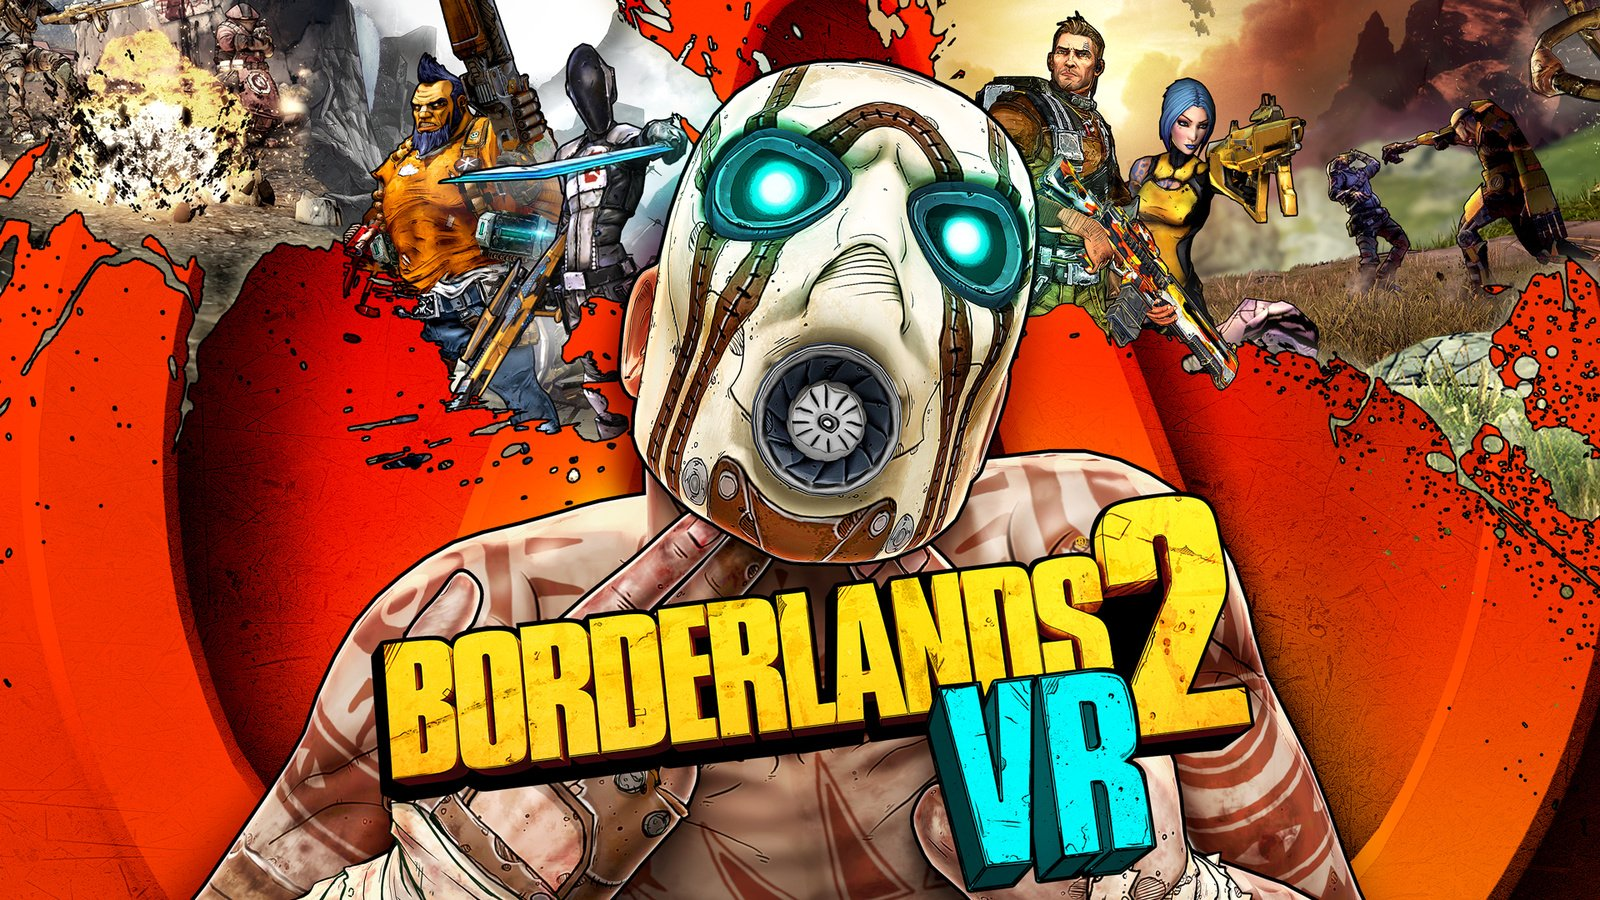 Borderlands 2 VR Pulls the Trigger on PSVR This Year - Push Square